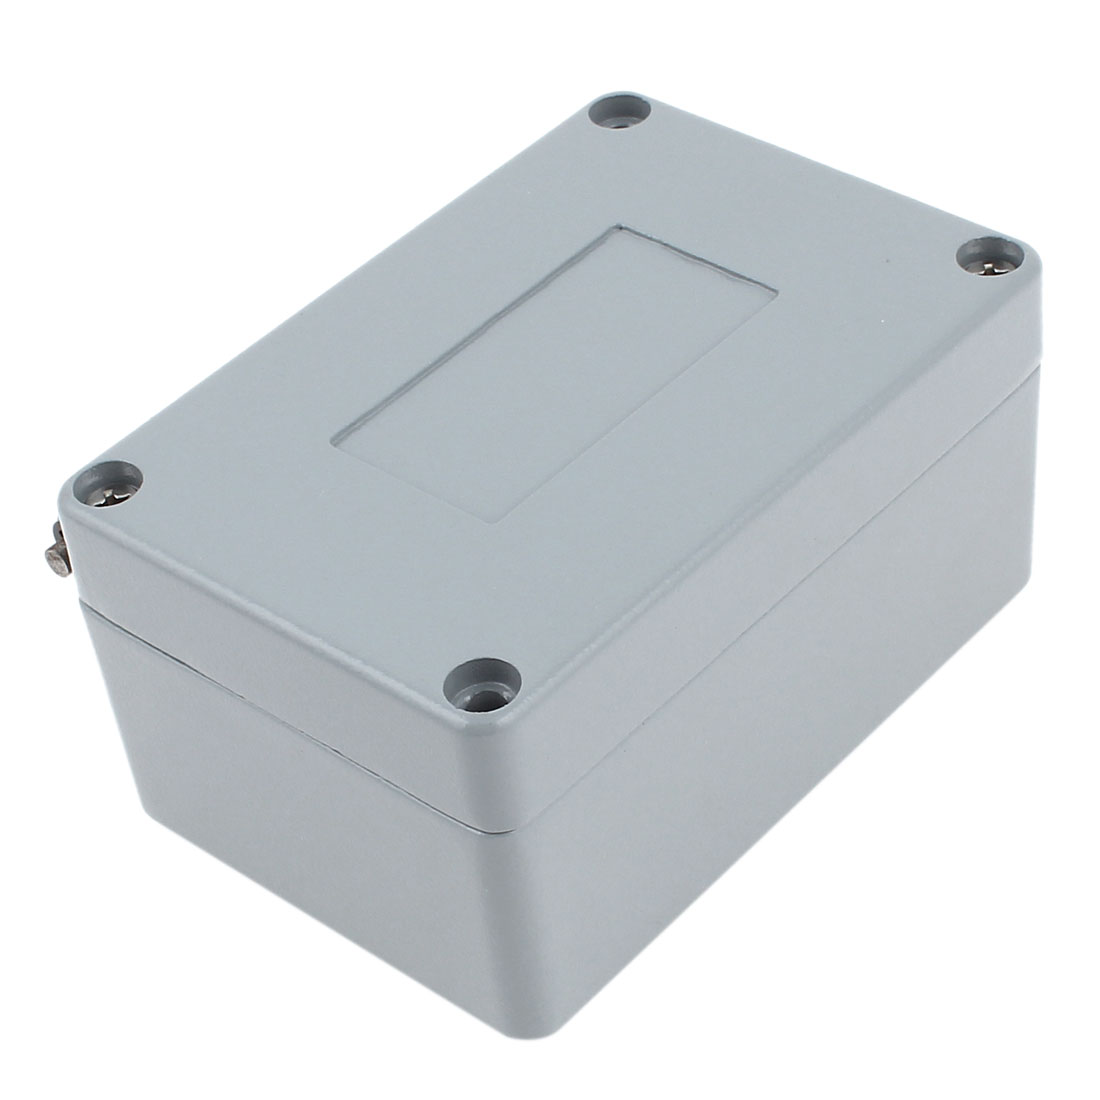 100mm x 68mm x 50mm Waterproof Aluminium Alloy DIY Junction Box Power Protection Case